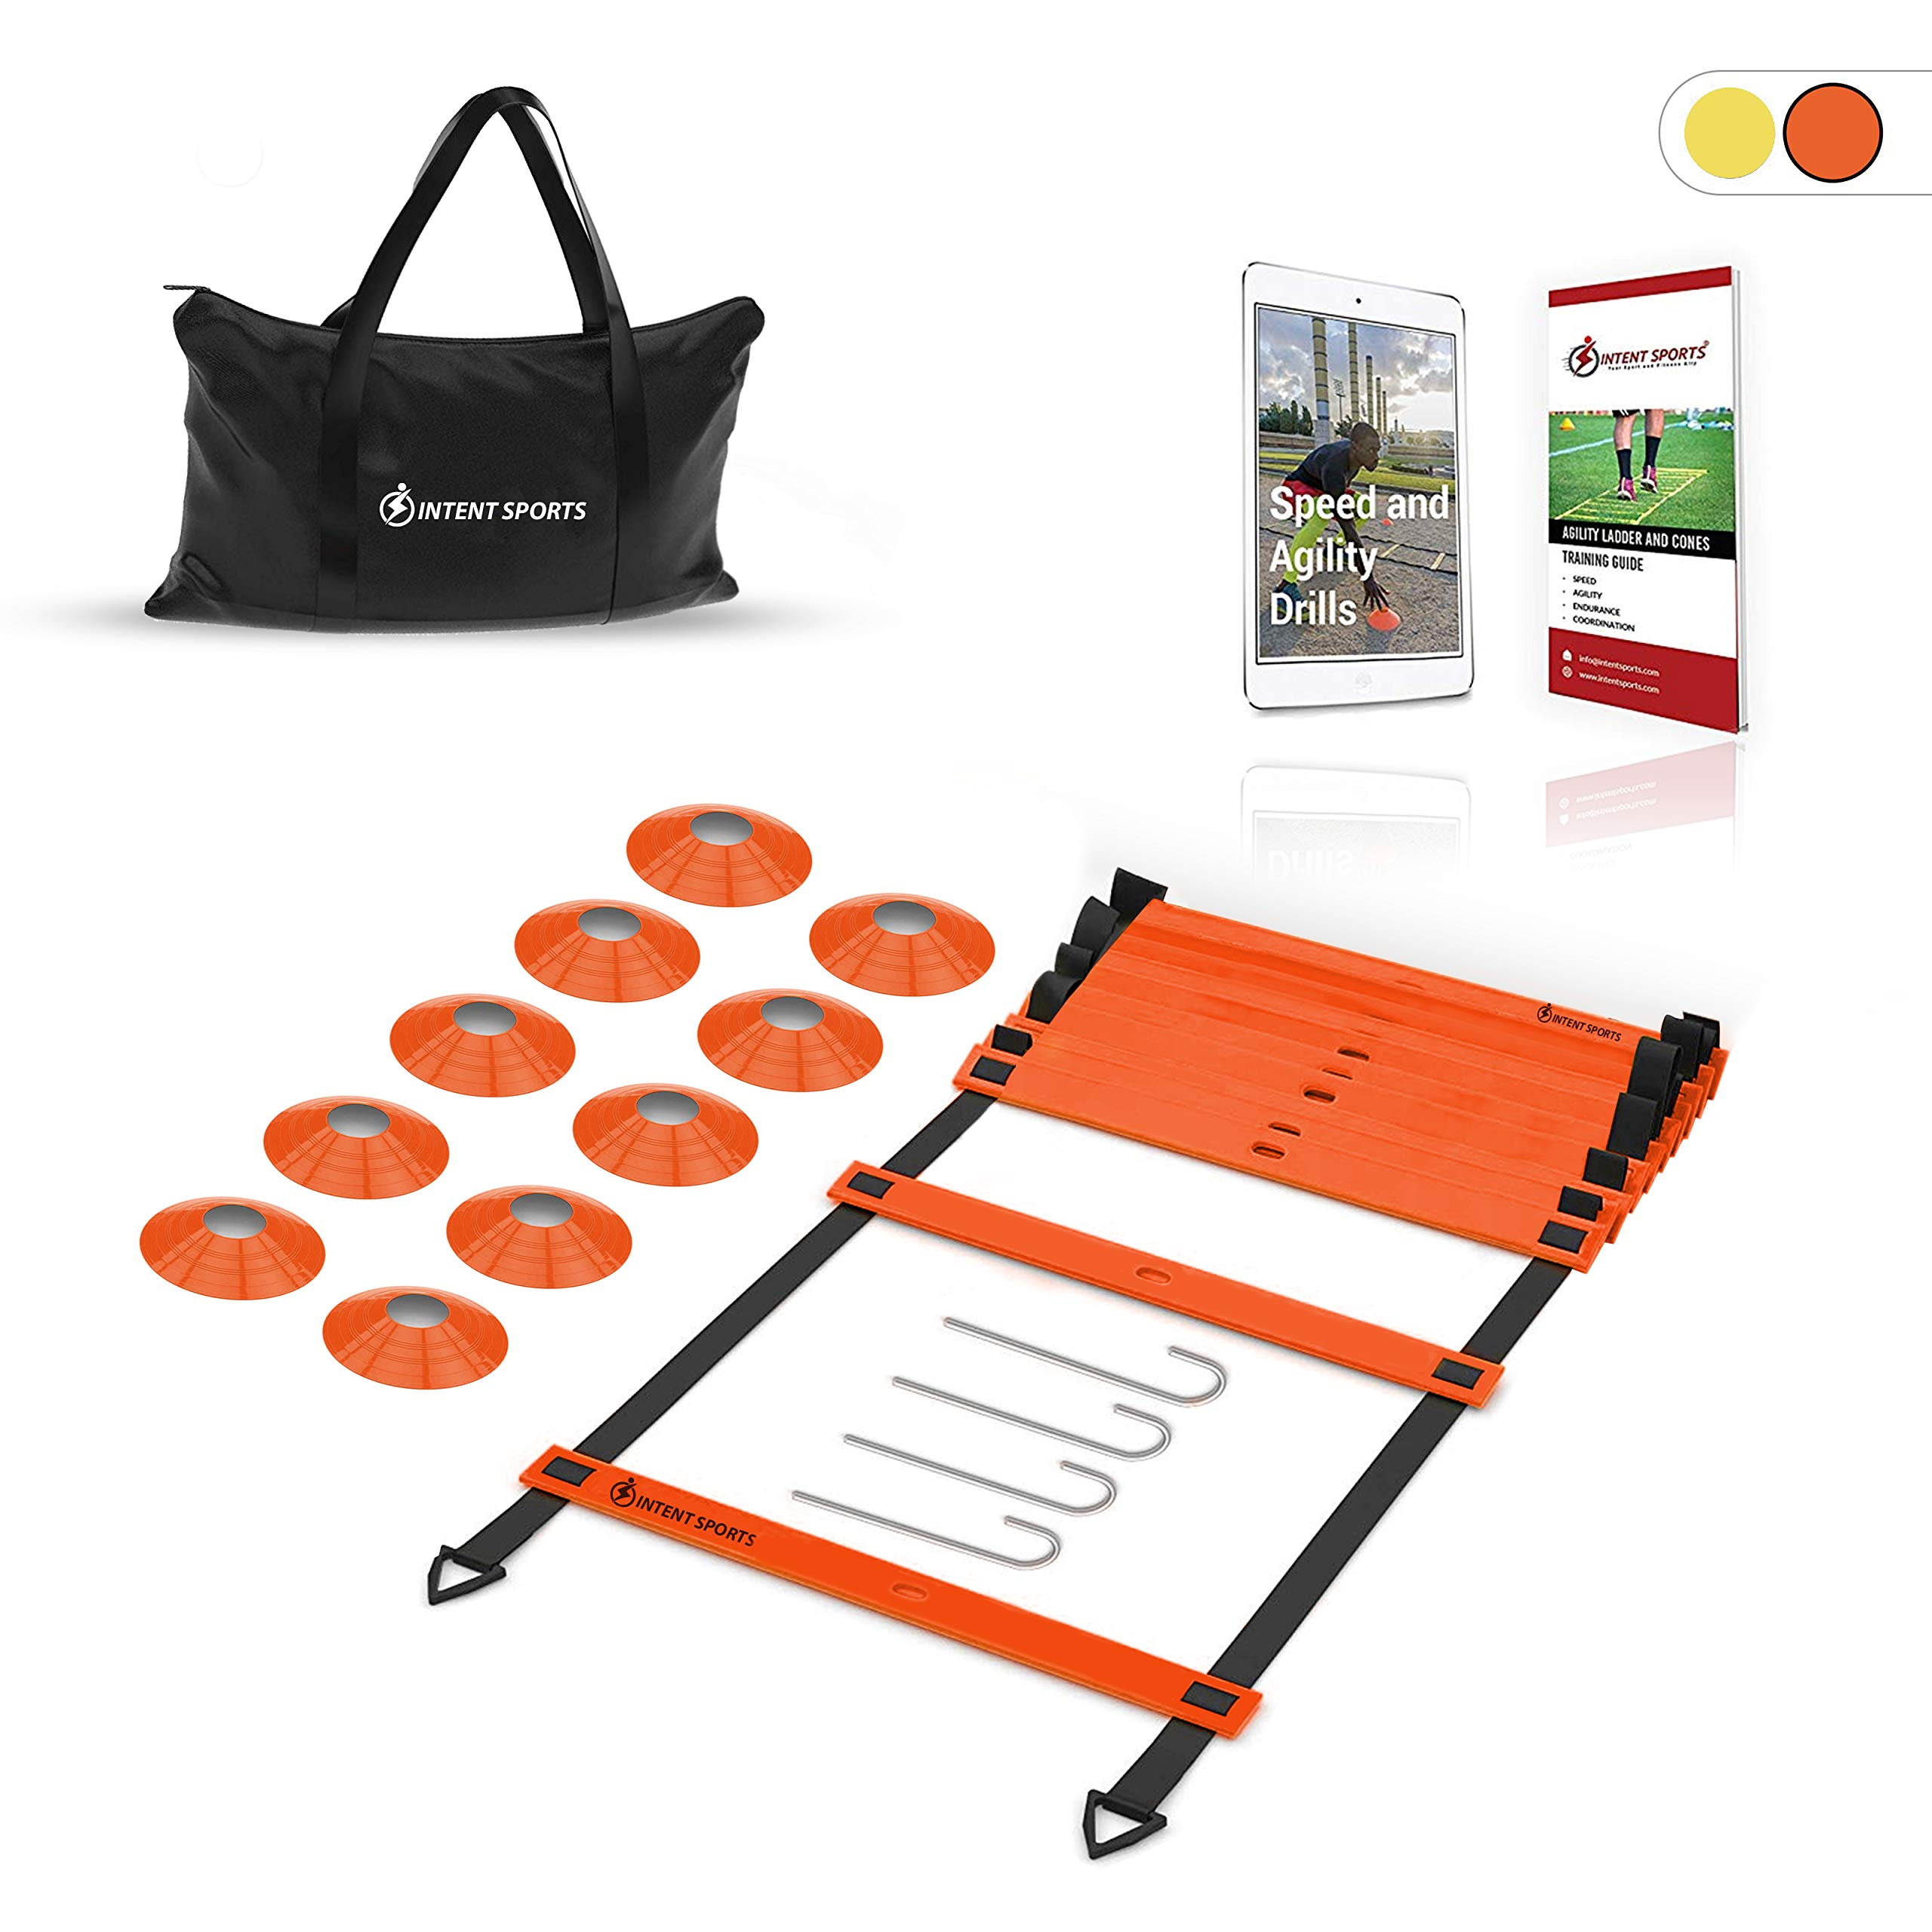 INTENT SPORTS Pro 20ft Speed Agility Ladder & 10 Cones Training Set – Exercise Workout Equipment to Boost Speed, Coordination, Footwork, Explosiveness – Soccer, Football, Basketball, Lacrosse, Hockey